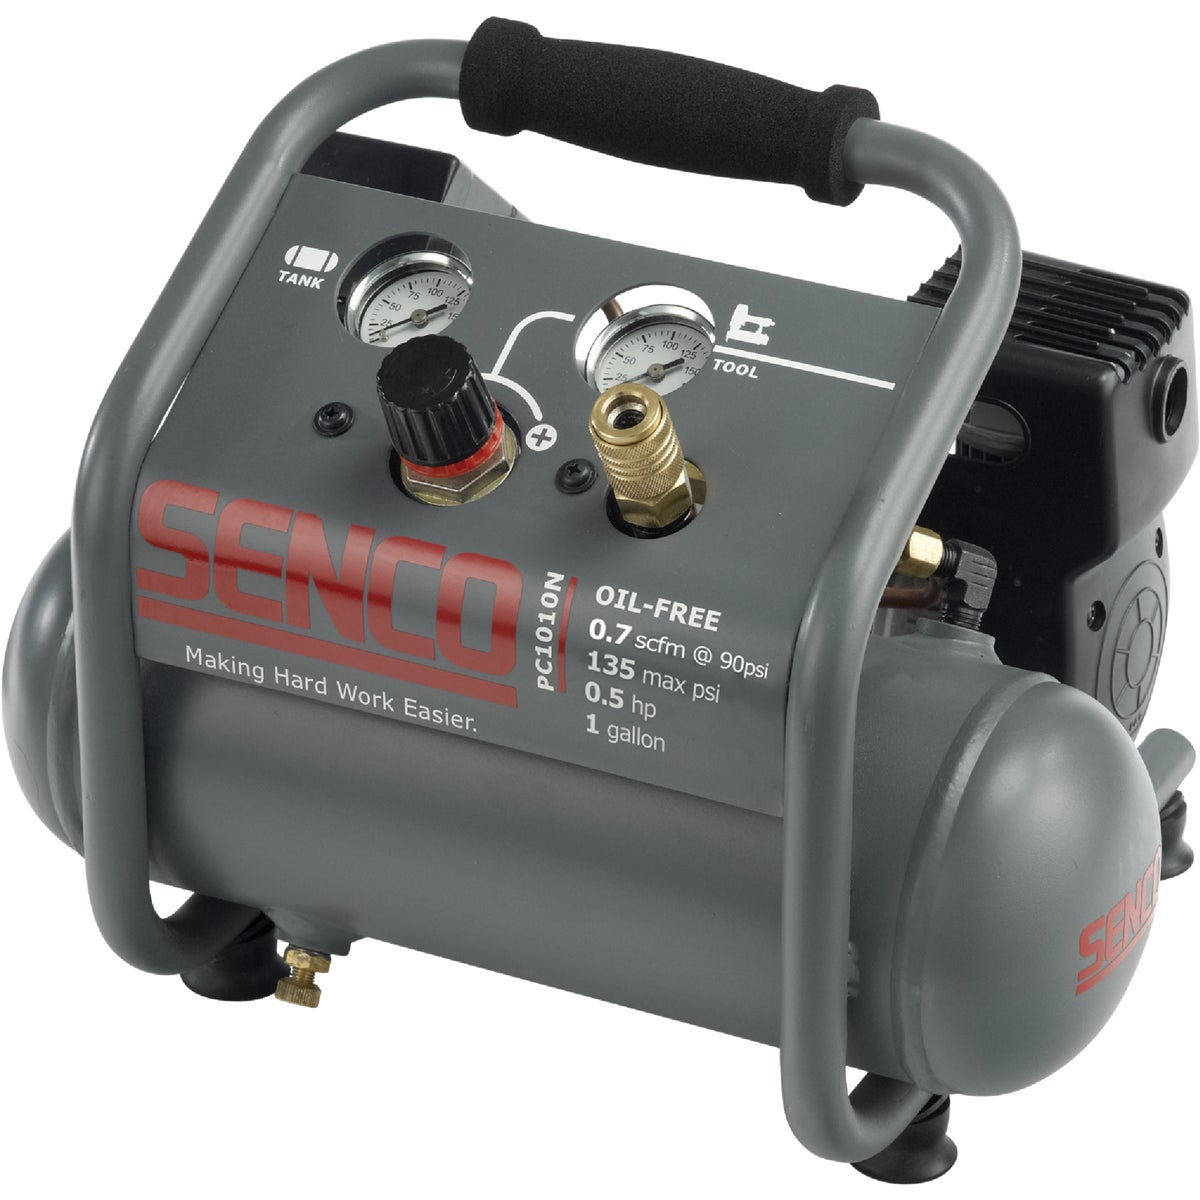 1HP 1GAL AIR COMPRESSOR - PC1010 by Senco Brands